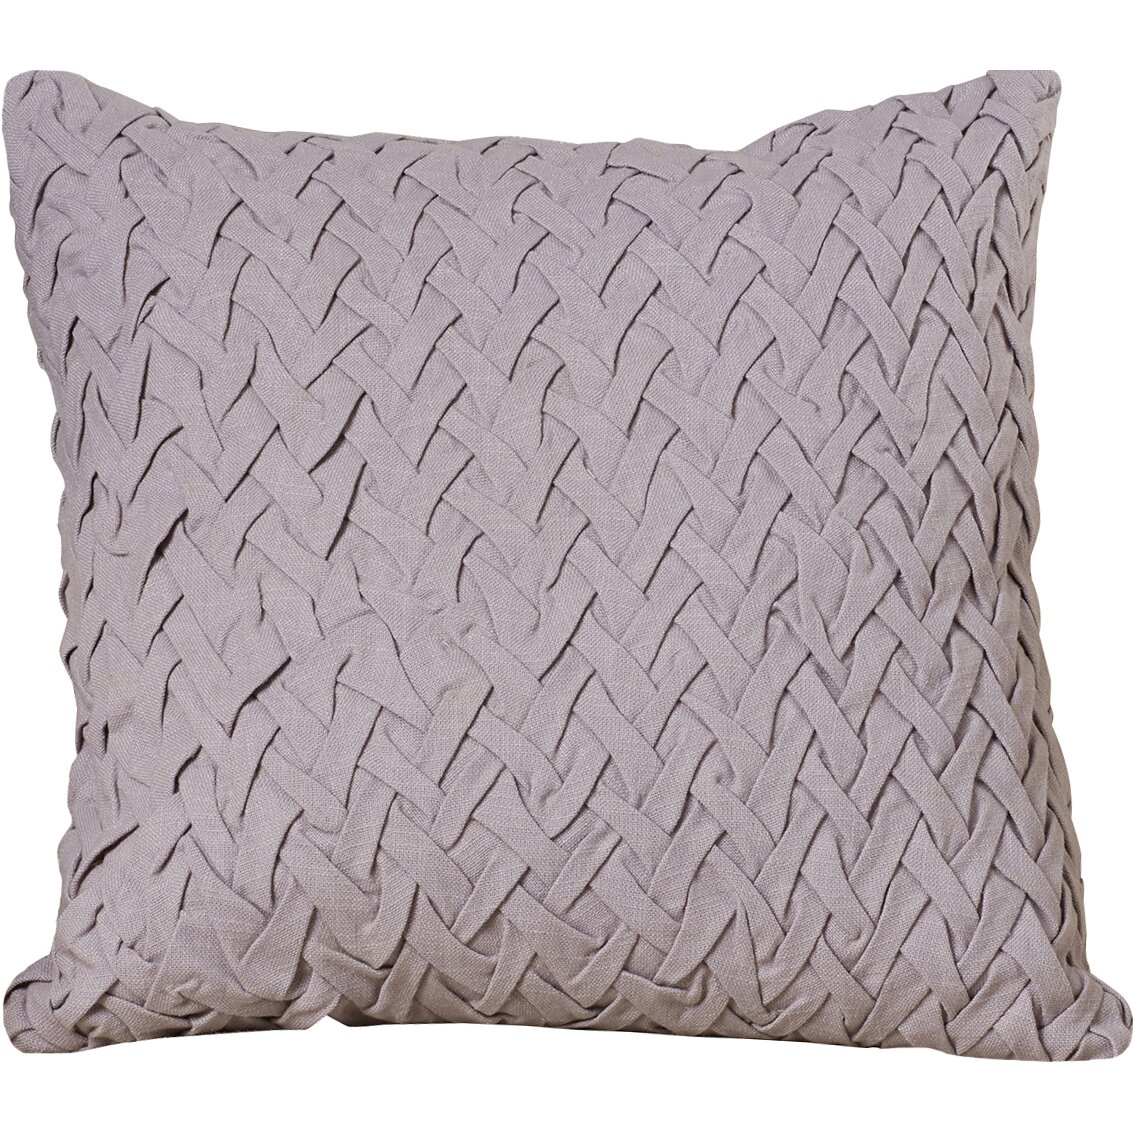 Down Throw Pillows For Couch : Wade Logan Krueger Down Throw Pillow Wayfair